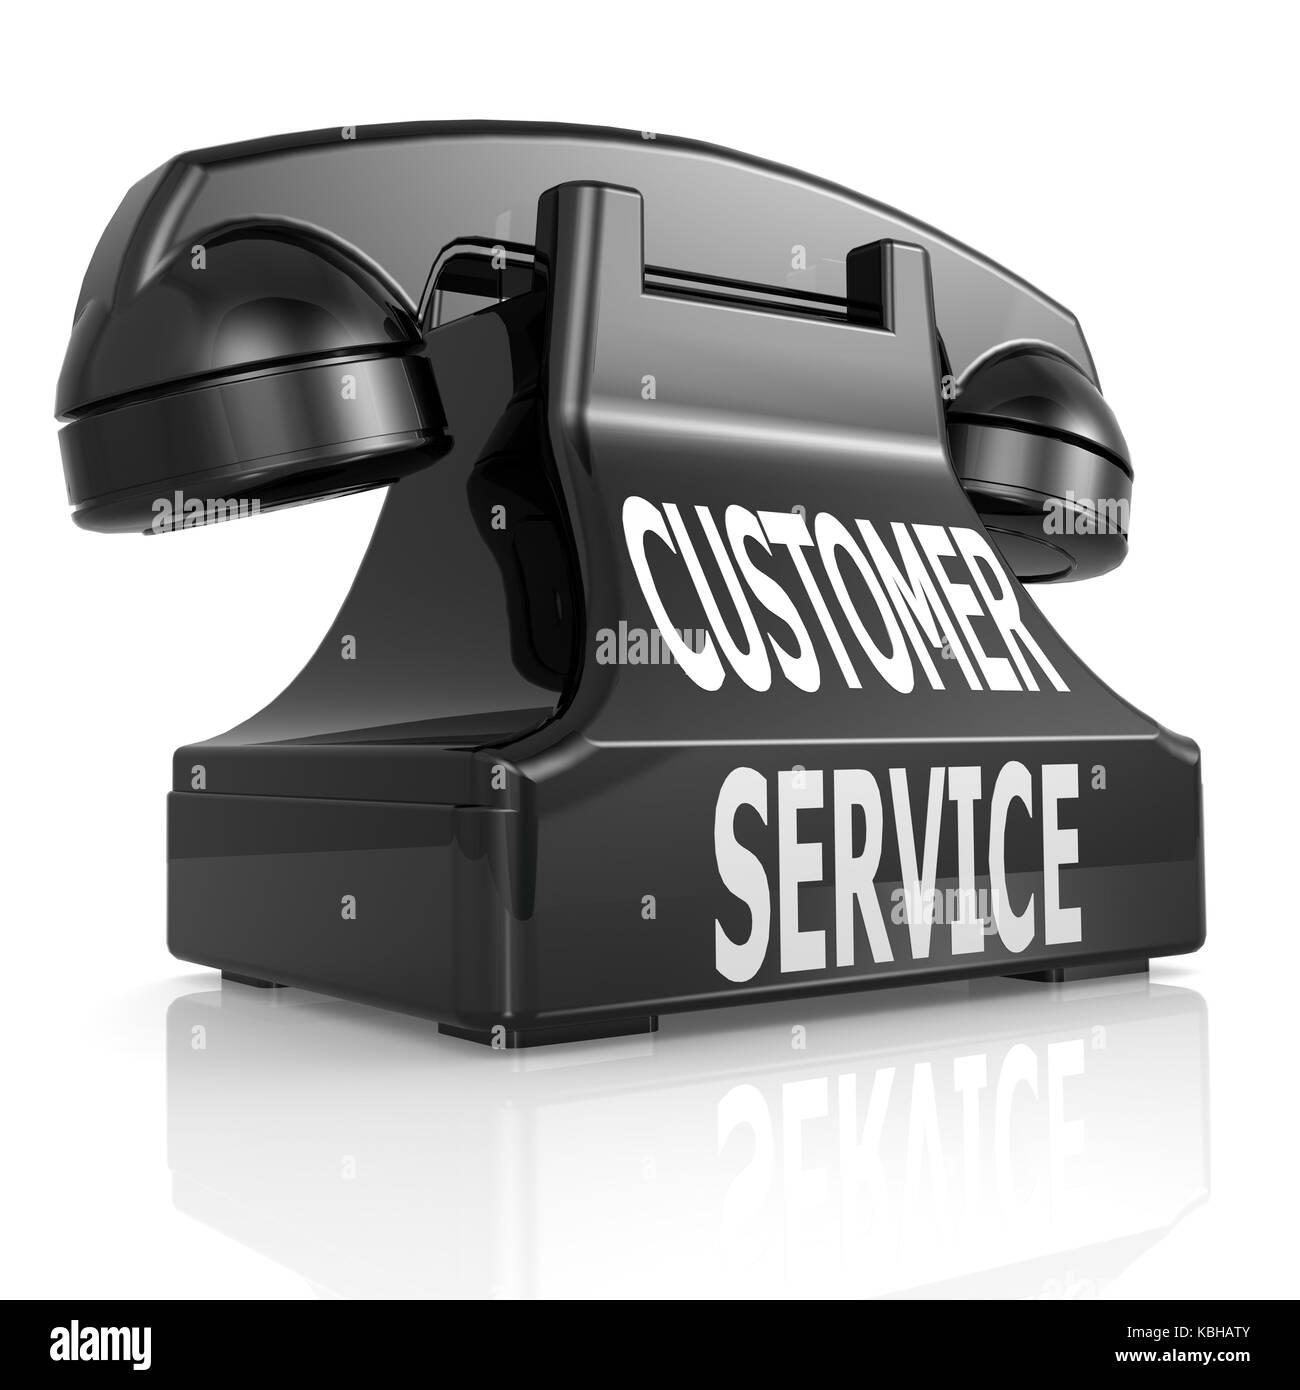 Black customer service phone image with hi-res rendered artwork that could be used for any graphic design. Stock Photo